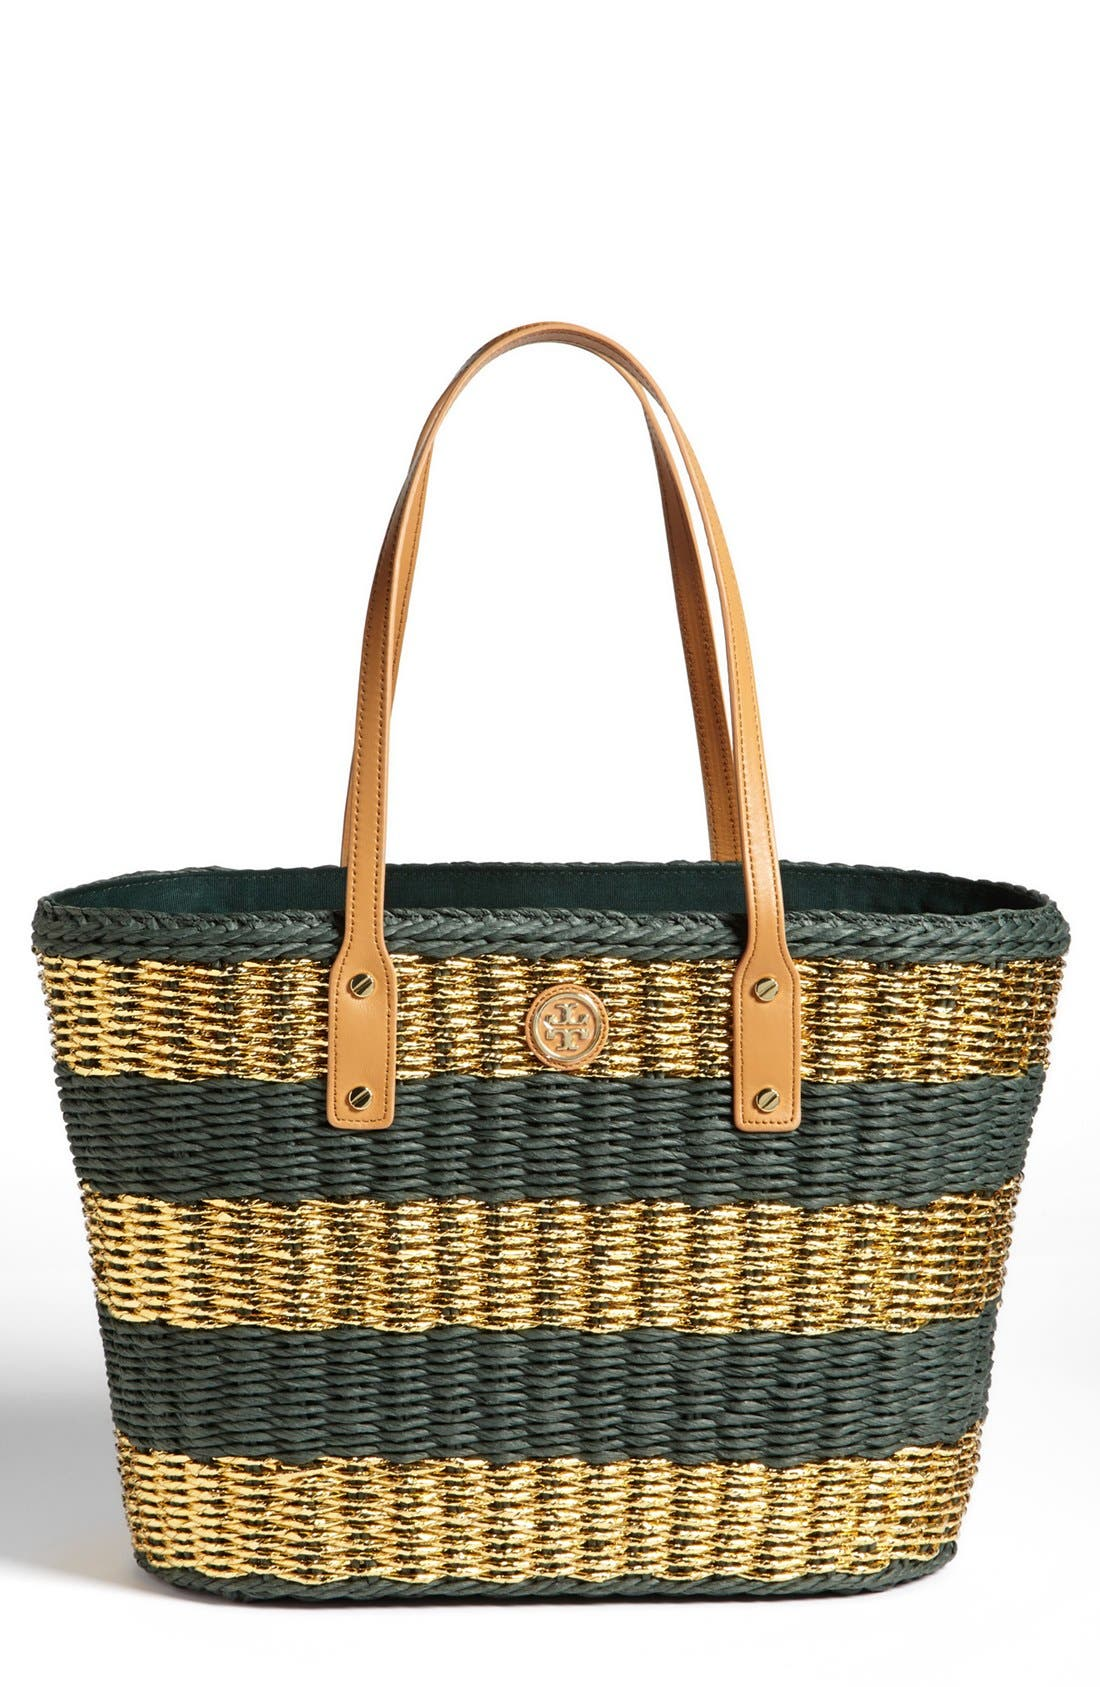 Alternate Image 1 Selected - Tory Burch Stripe Tote